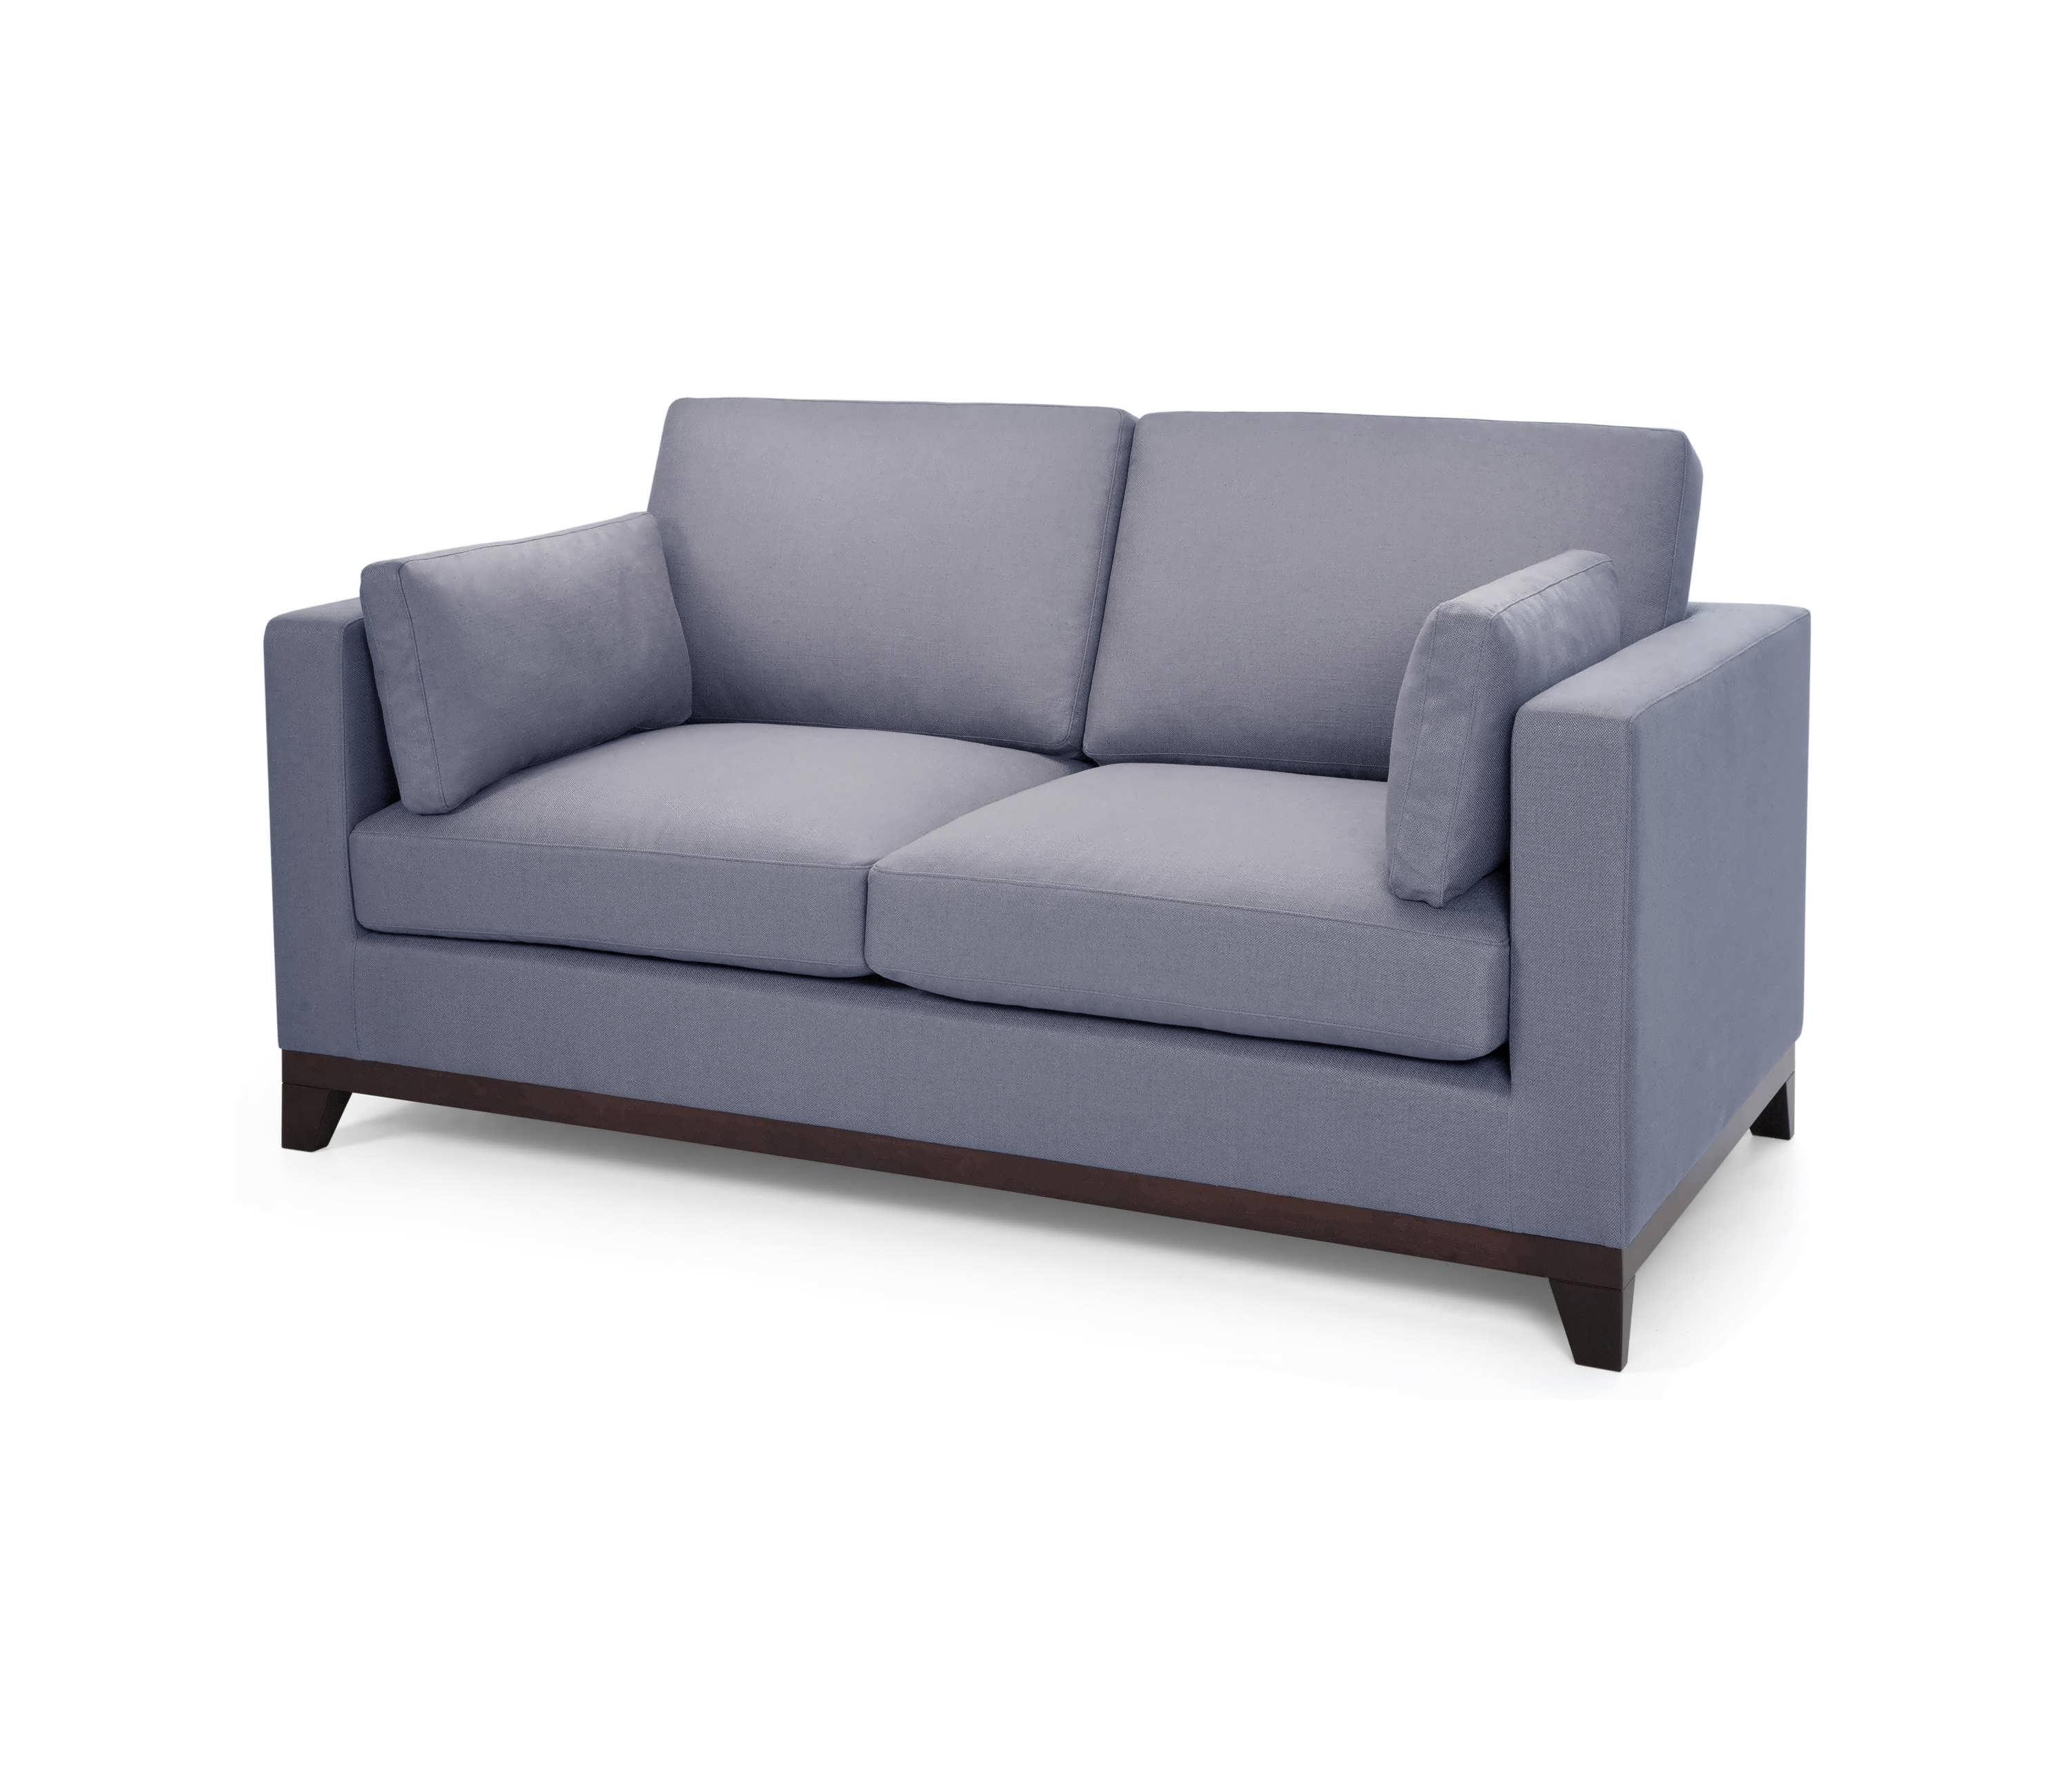 Mini Sofa 10 Best Mini Sofas Sofa Ideas